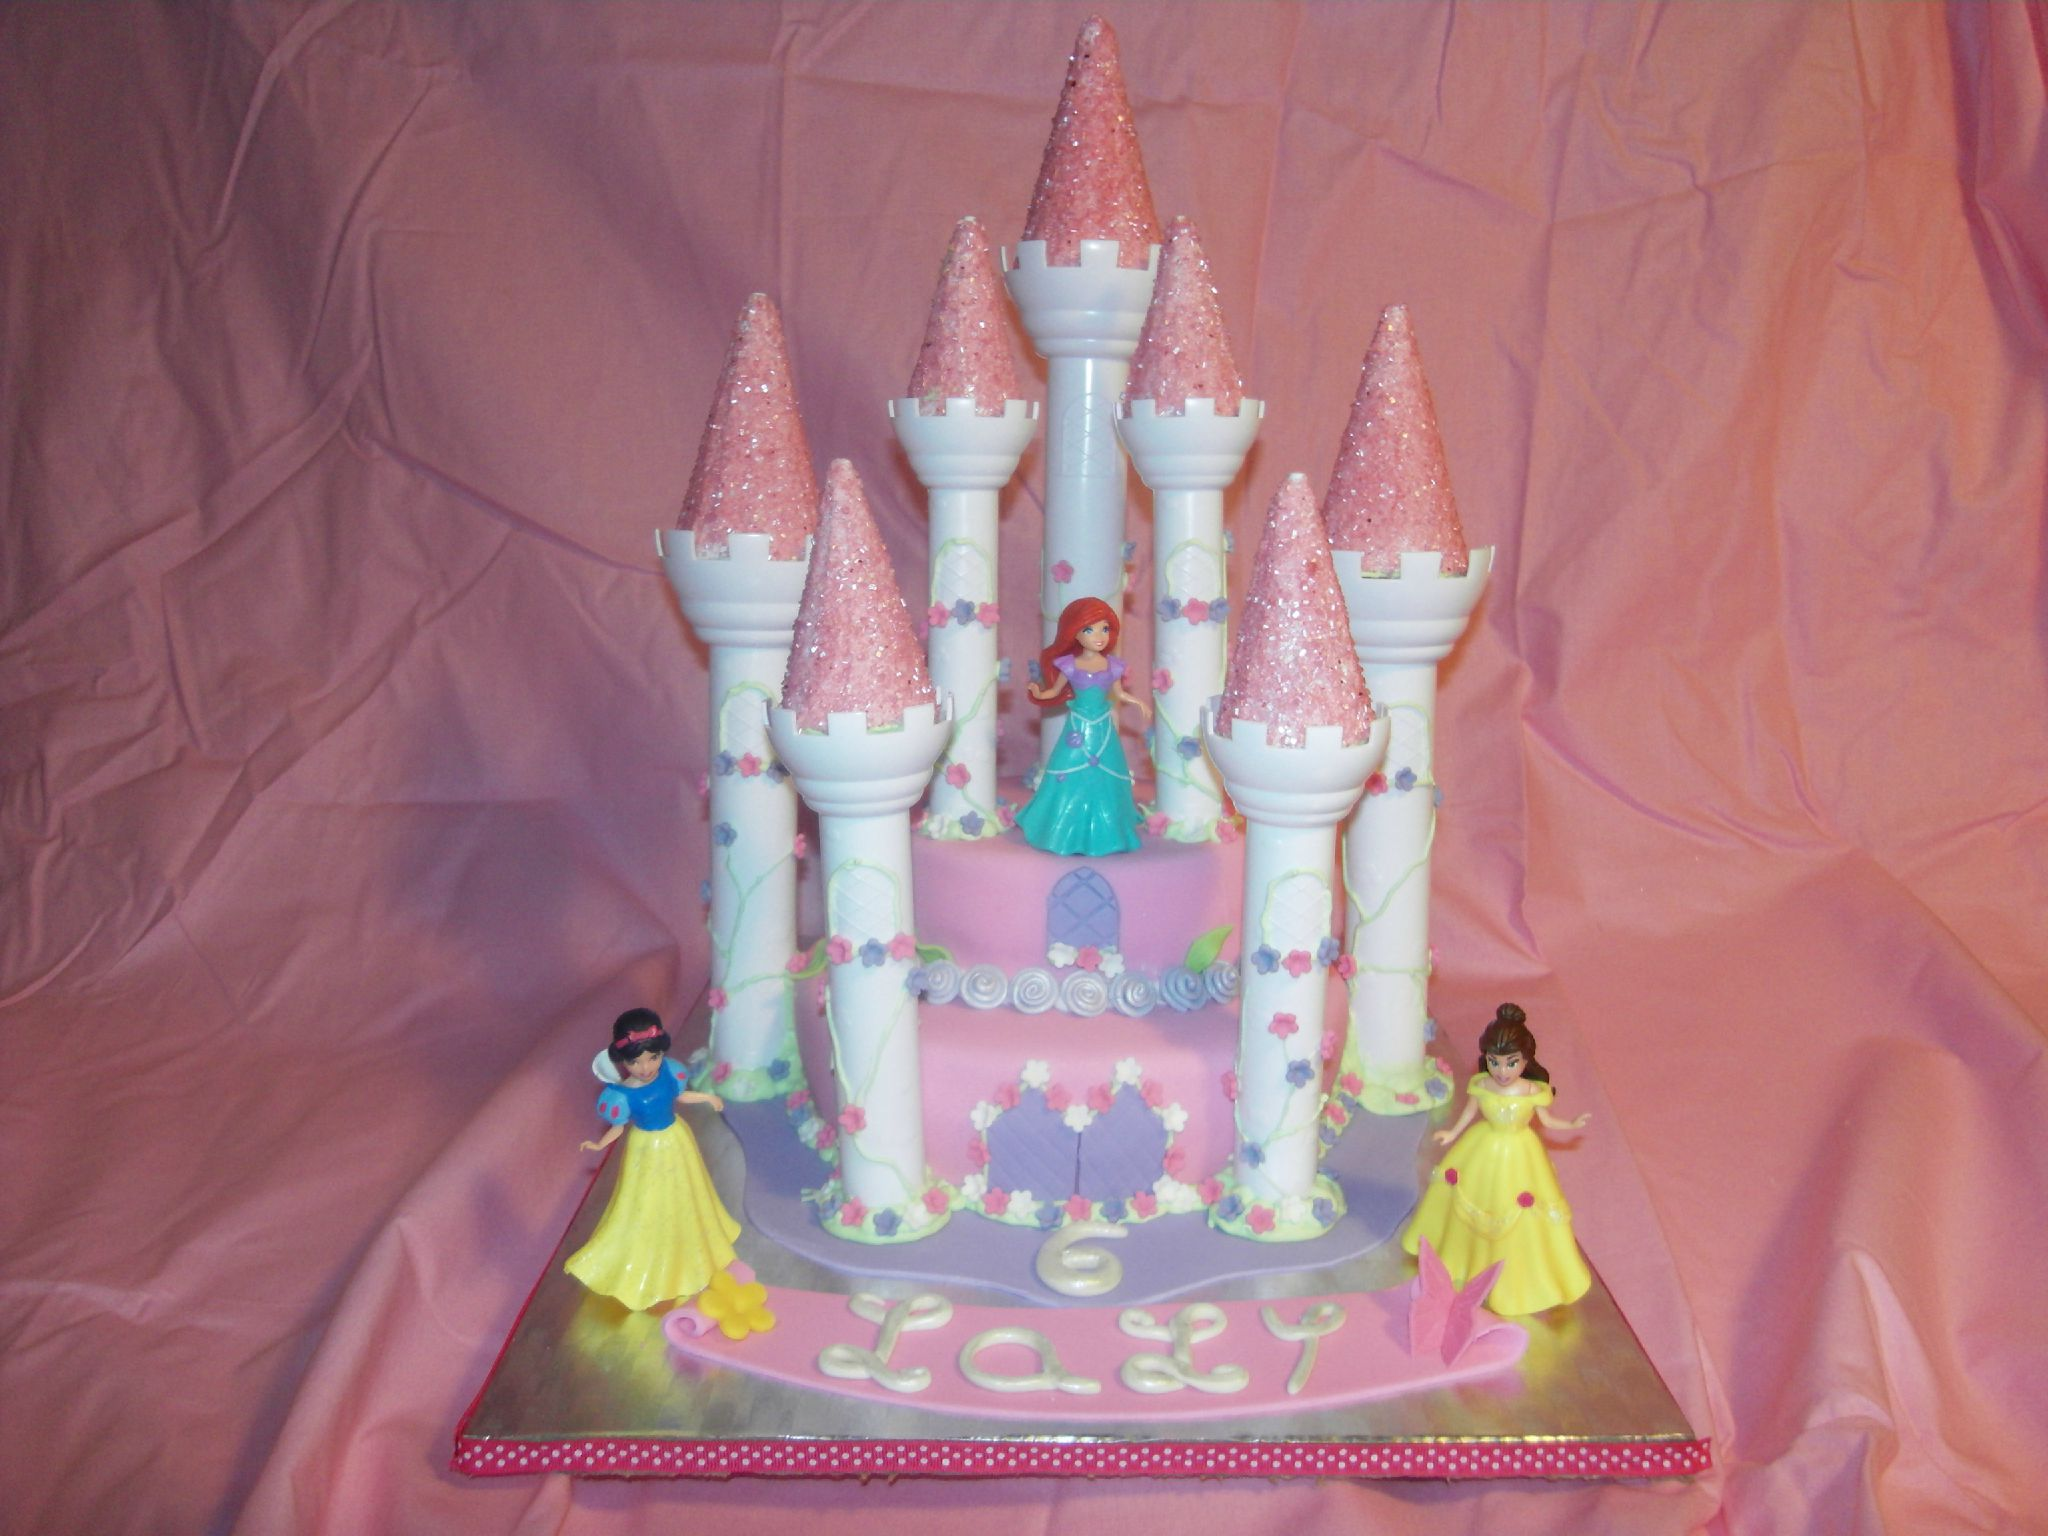 Gateaux princesse disney for Image chateau princesse